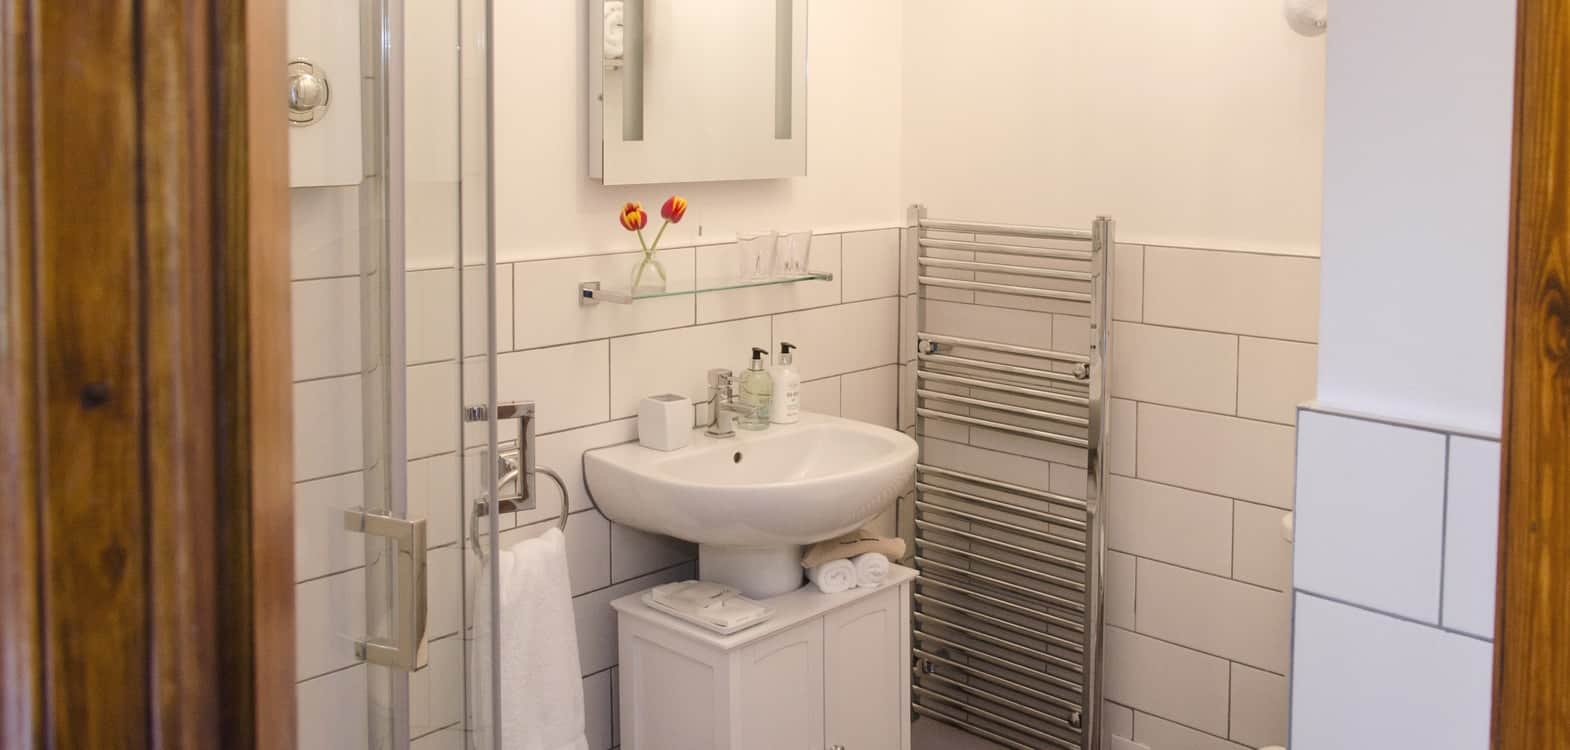 ensuite bathroom in Skye room at Firhall B&B with white bathroom suite and white tiles